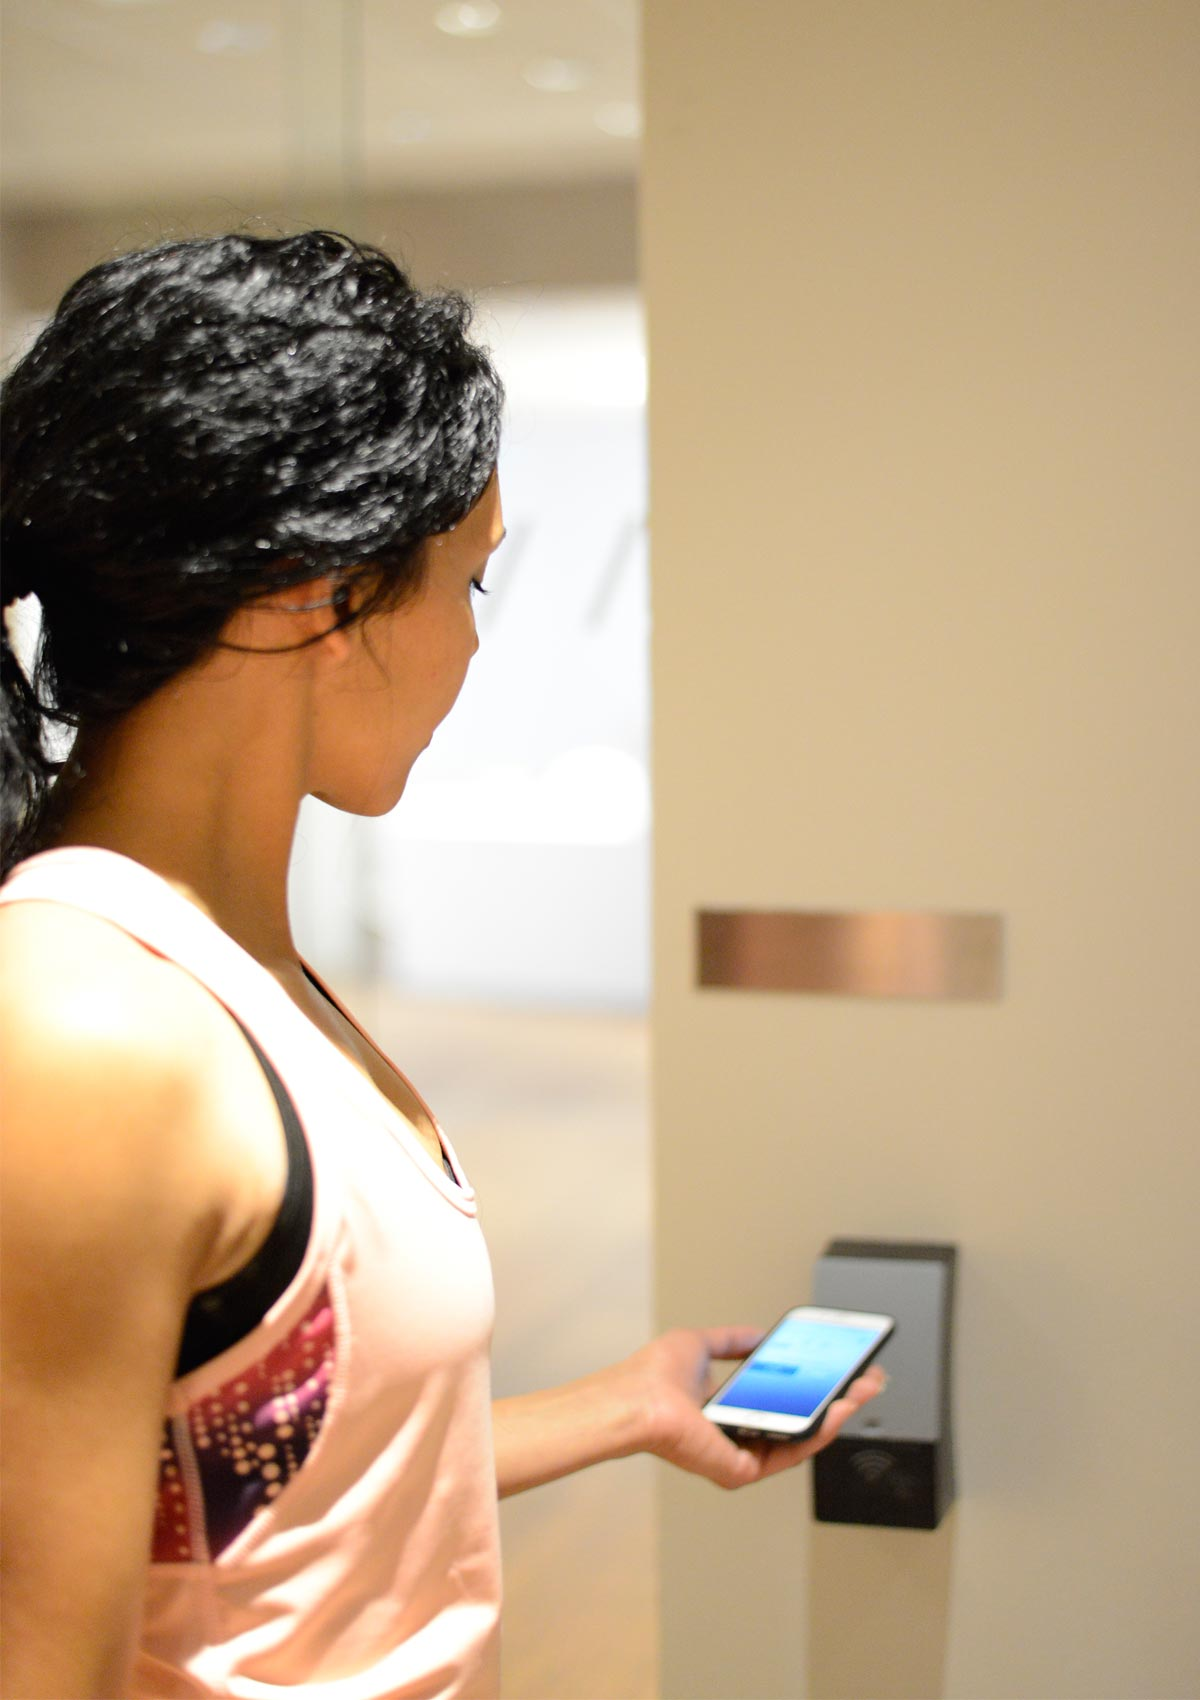 card access control system Gym and fitness access control pool spa access control system hotel access control system hotel security system myanmar